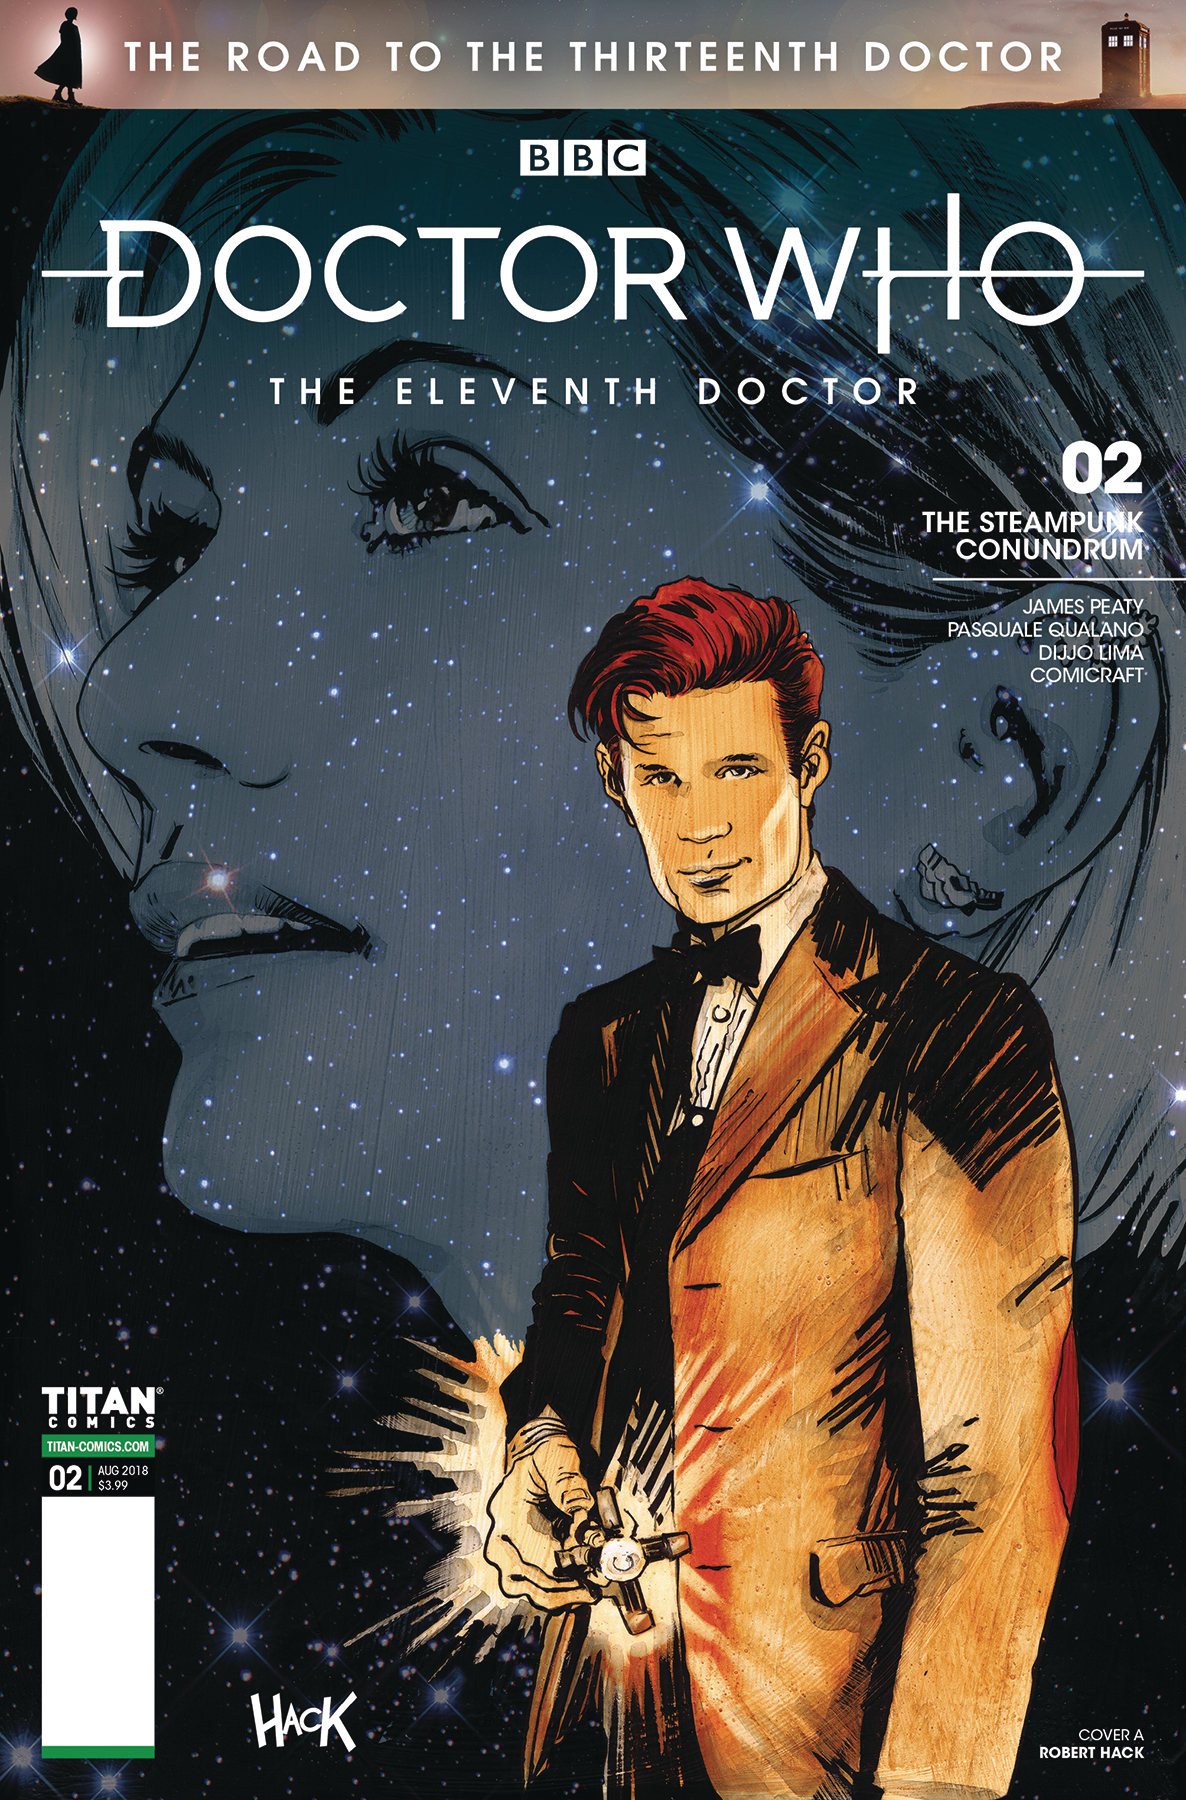 DOCTOR WHO ROAD TO 13TH DR #2 11TH CVR A HACK